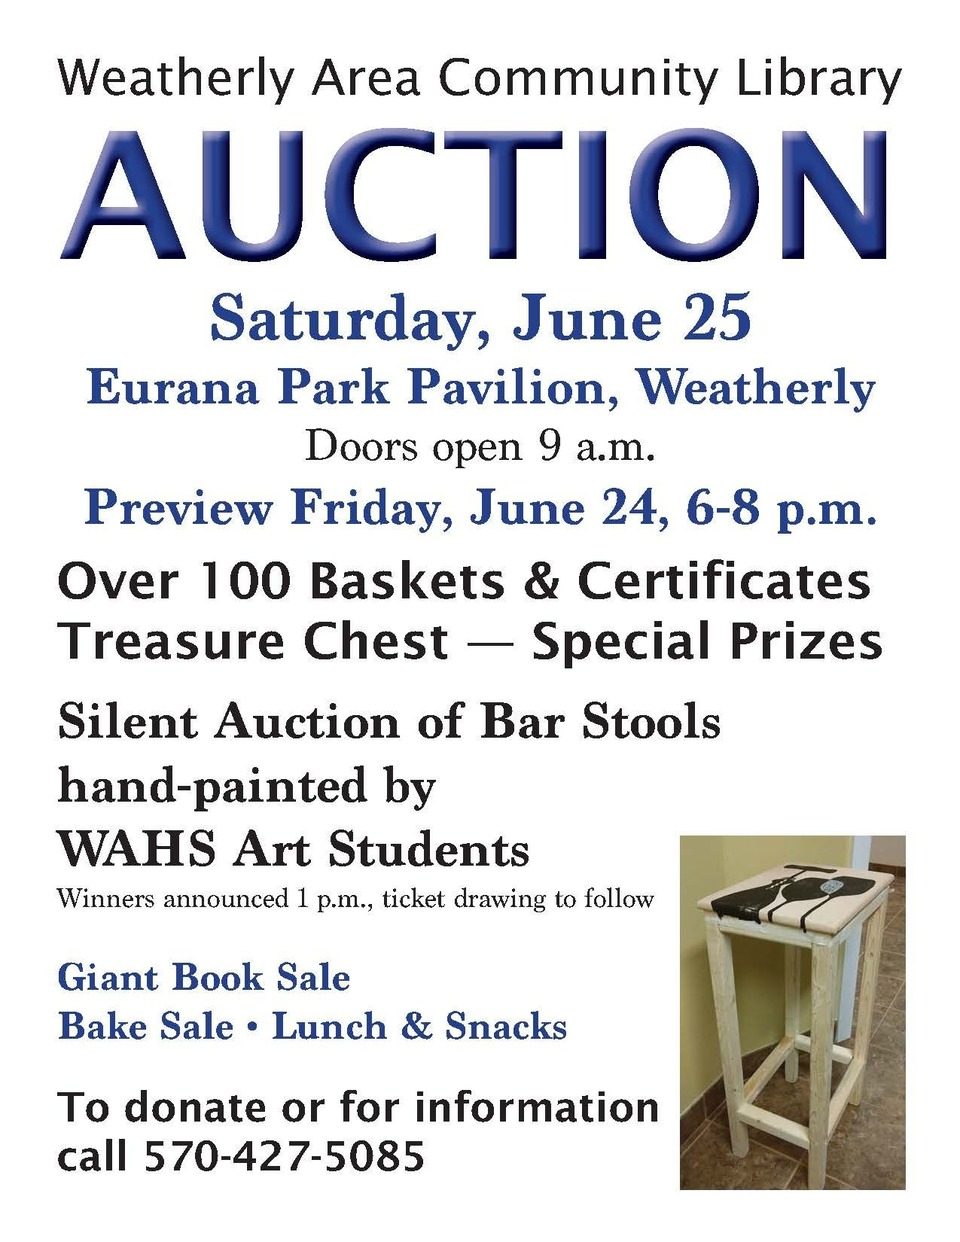 The Auction is coming!